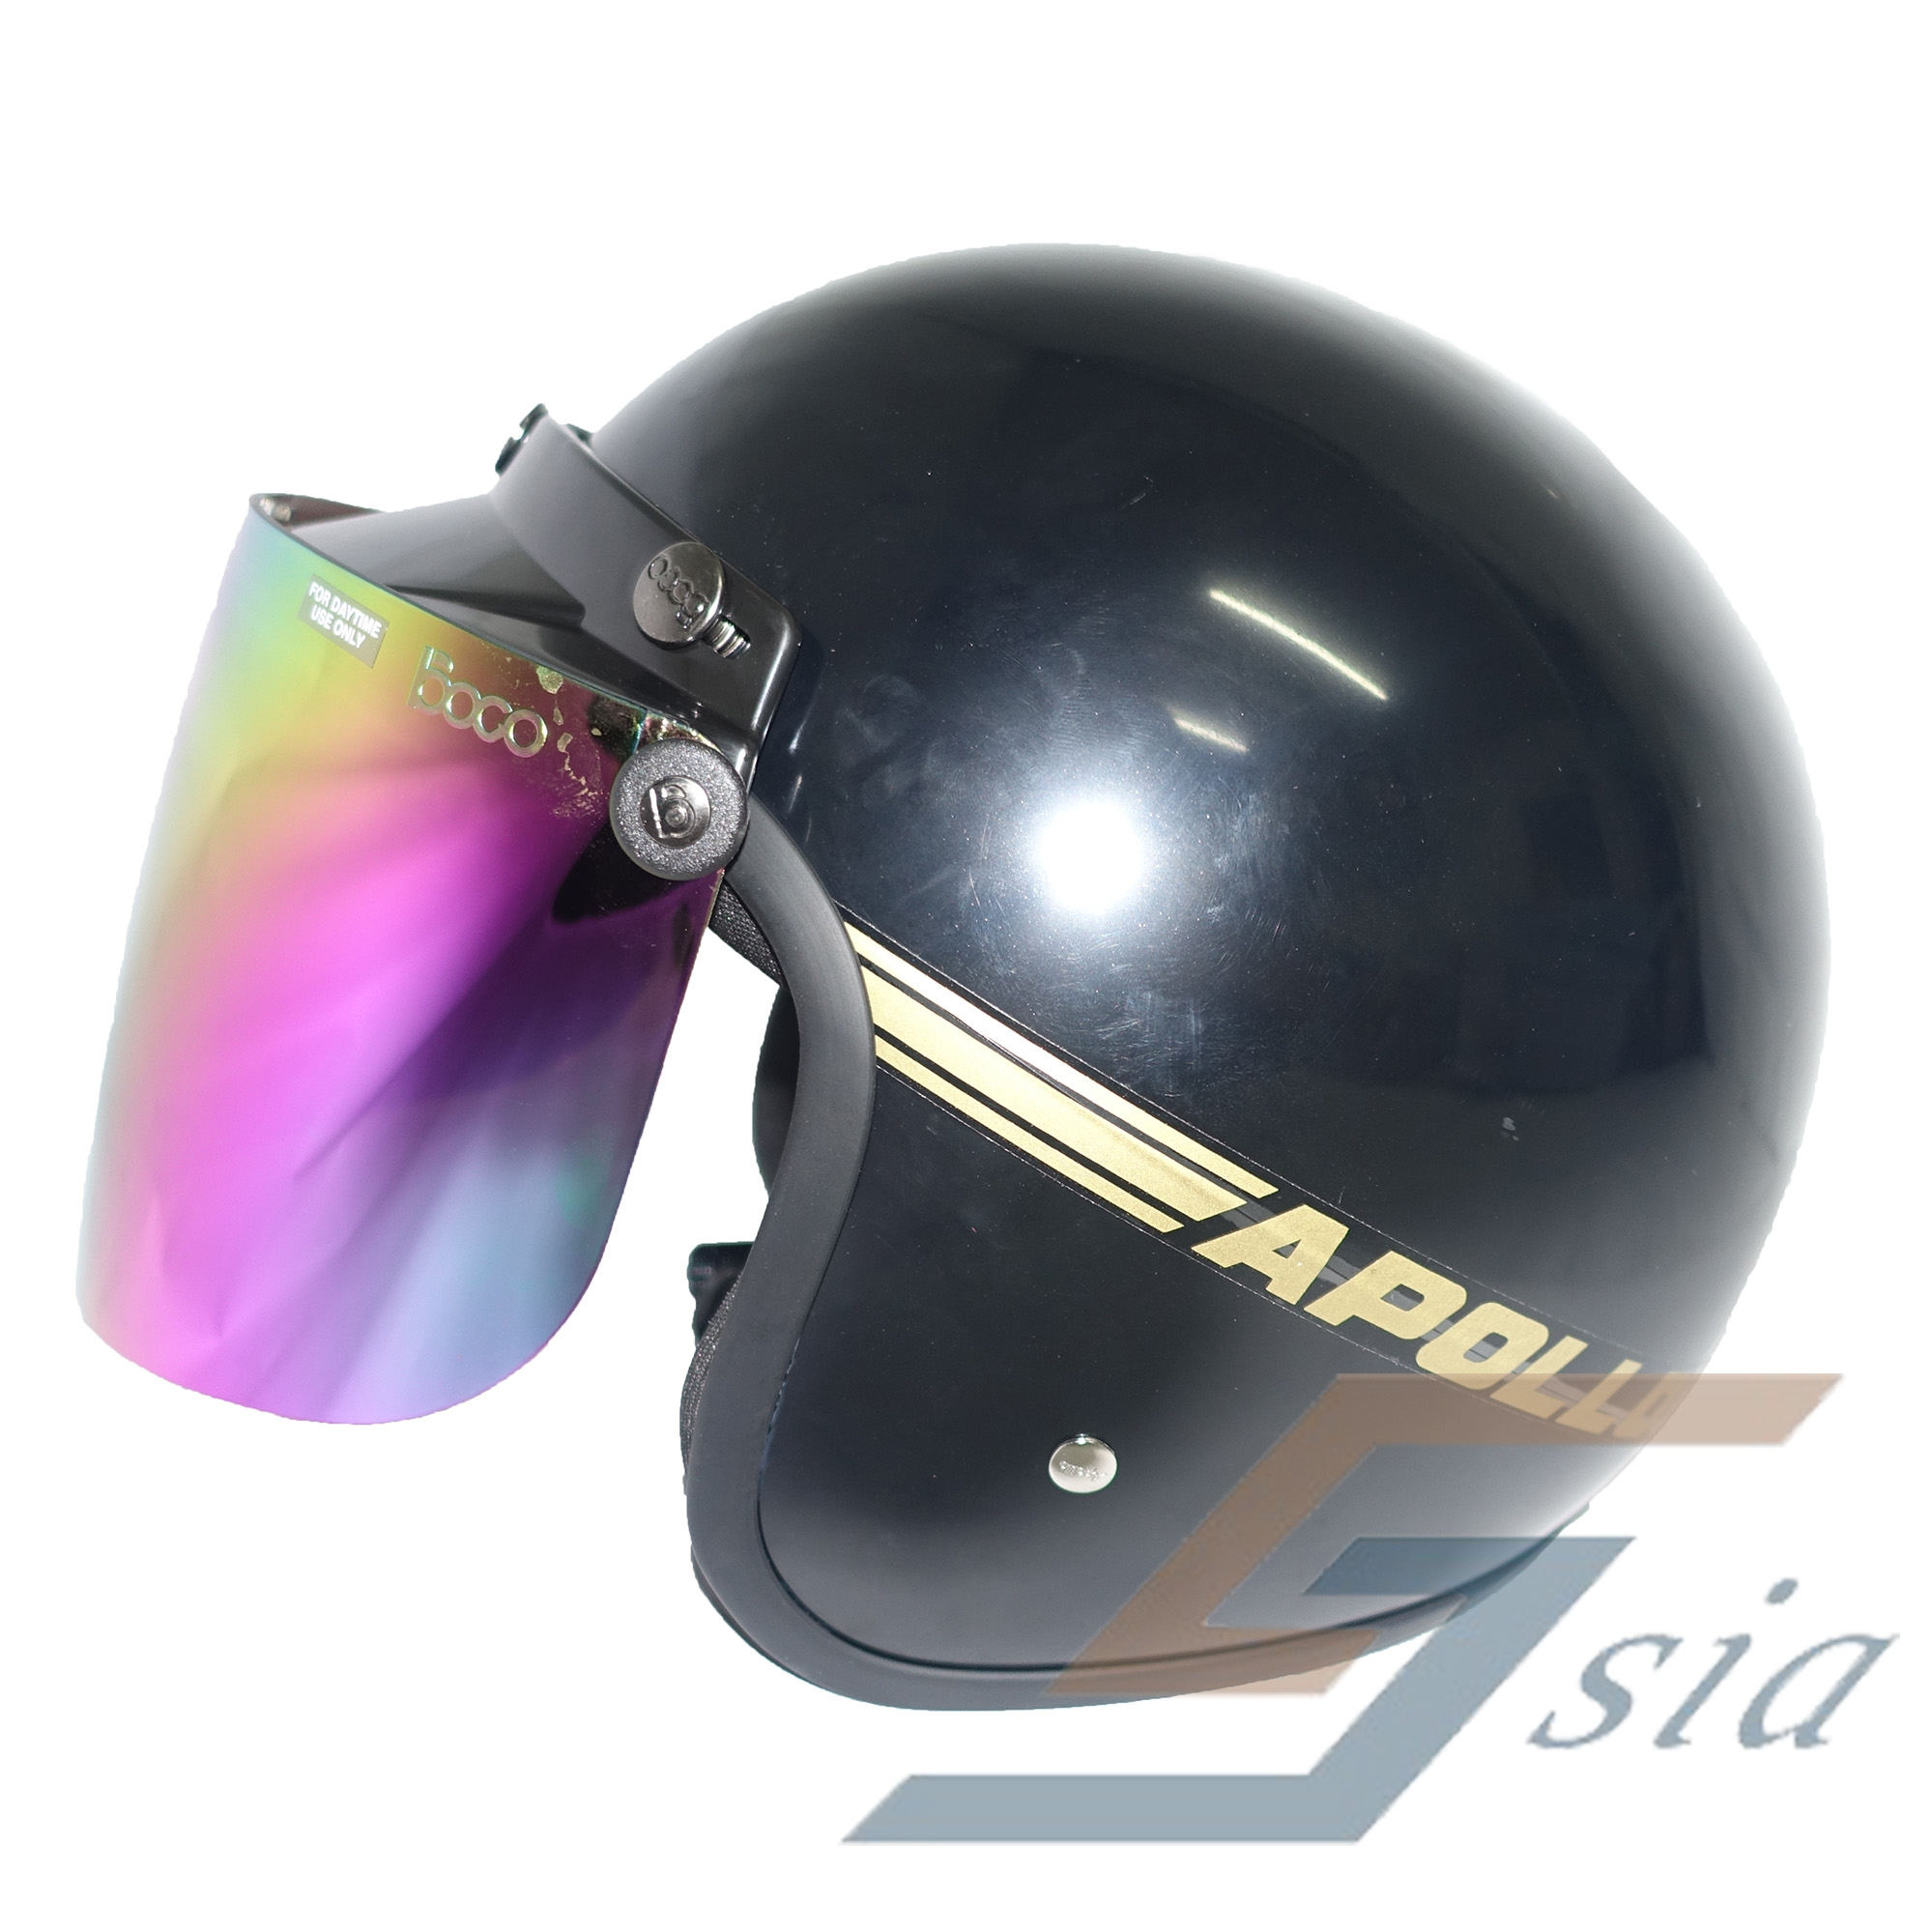 Apollo GS Helmet (Black) + BIKKO Visor (Iridium Rainbow)